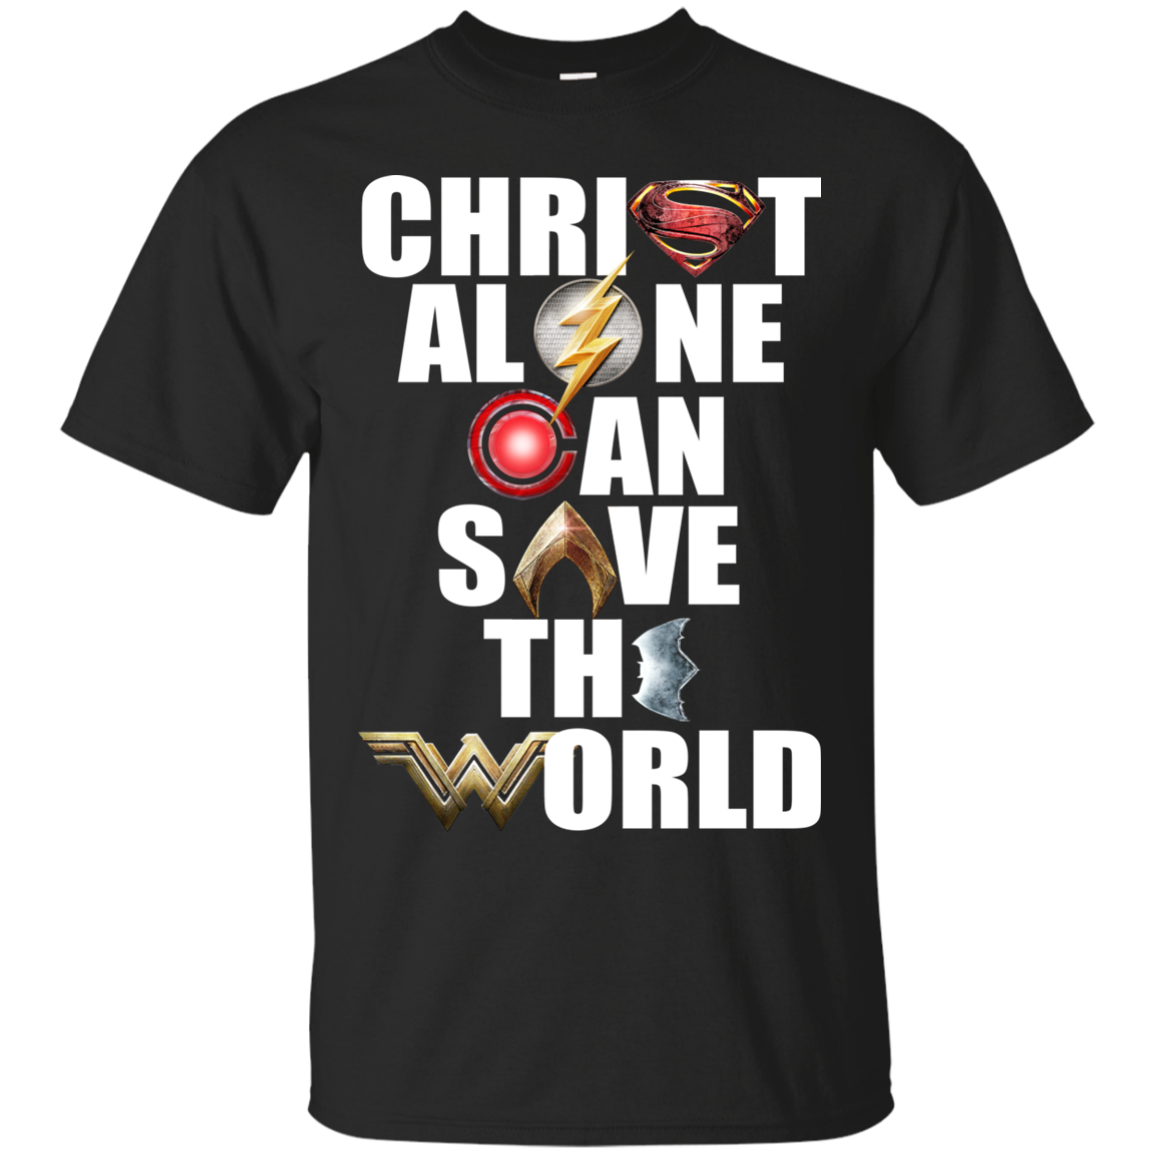 justice league christ alone can save the world shirt hoodie